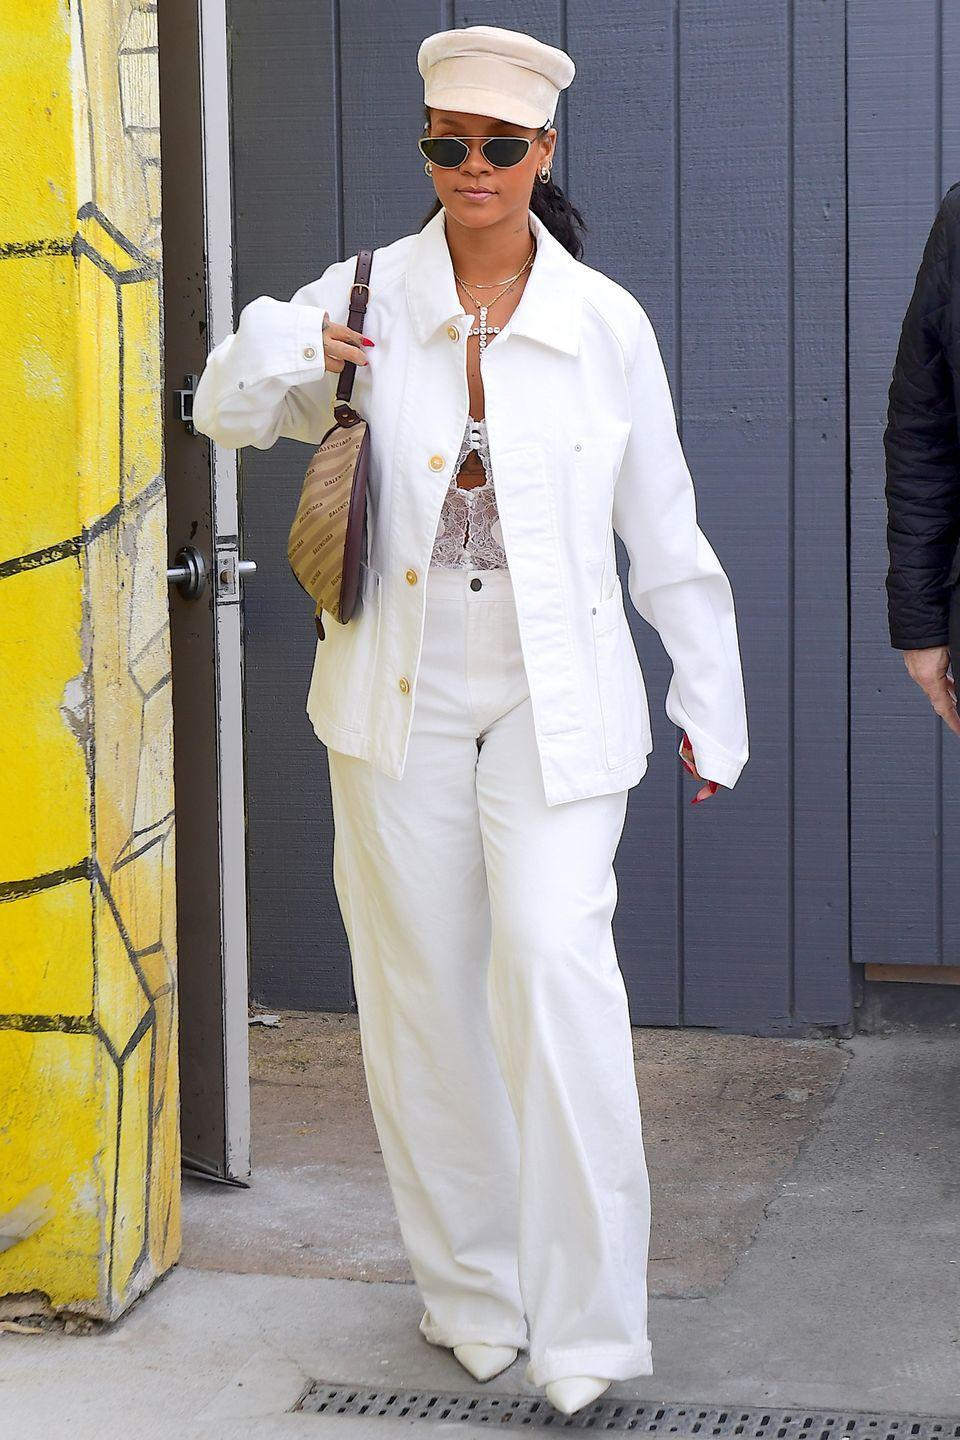 "<p>In baggy white high-waisted pants, an oversized white denim jacket, a Balenciaga bag, a newsboy cap, and <a href=""https://www.barneys.com/product/alain-mikli-nad-c3-a8ge-sunglasses-505748562.html"" rel=""nofollow noopener"" target=""_blank"" data-ylk=""slk:Alain Mikli x Alexandre Vauthier 'Nadège' sunglasses"" class=""link rapid-noclick-resp"">Alain Mikli x Alexandre Vauthier 'Nadège' sunglasses</a>.</p>"